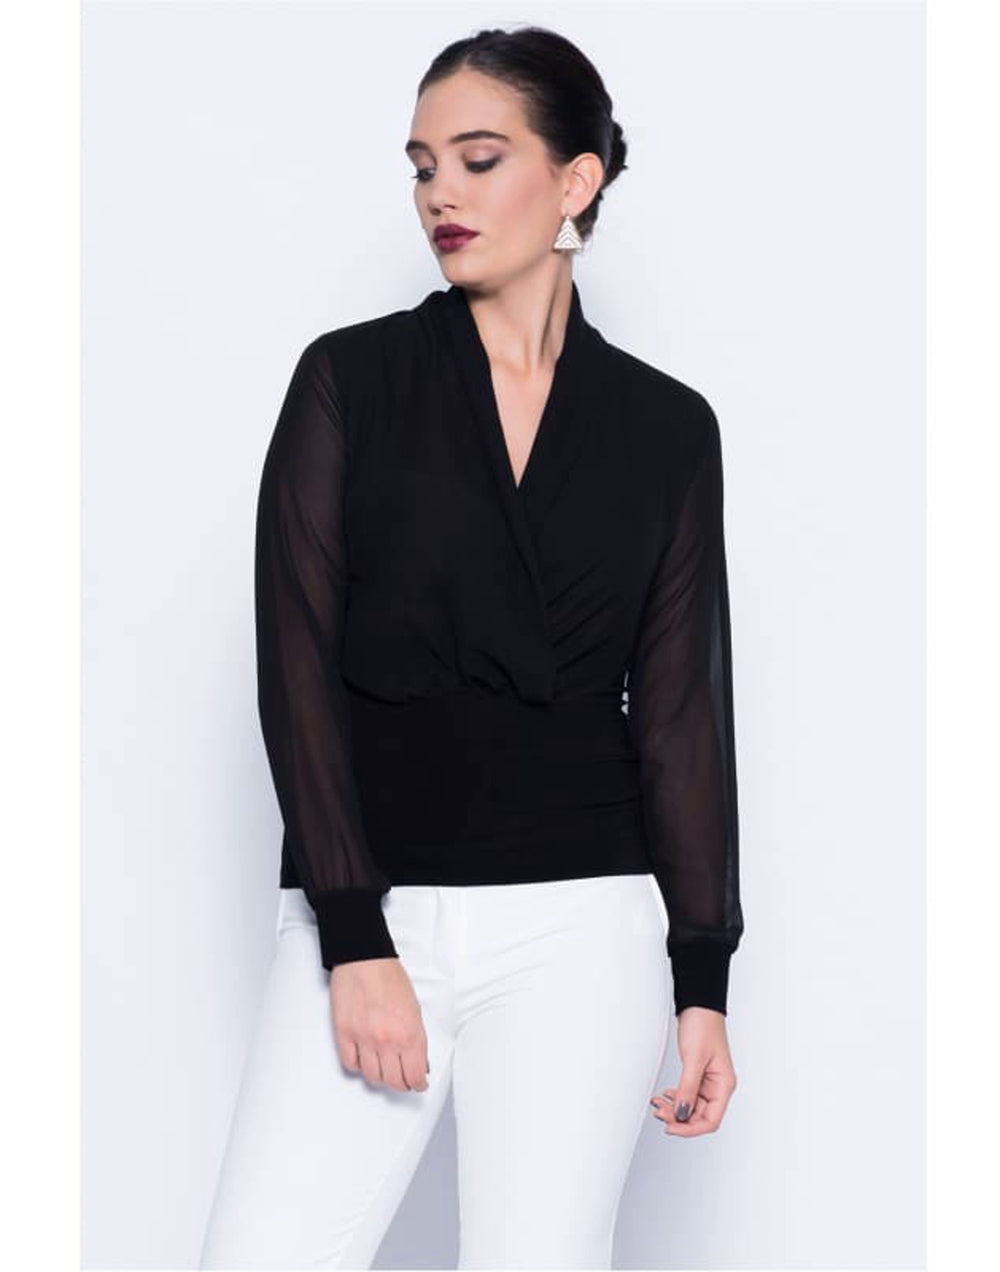 Black Wrap Over Blouse - Tops & Shirts Black black blouses black tops blouse blouses